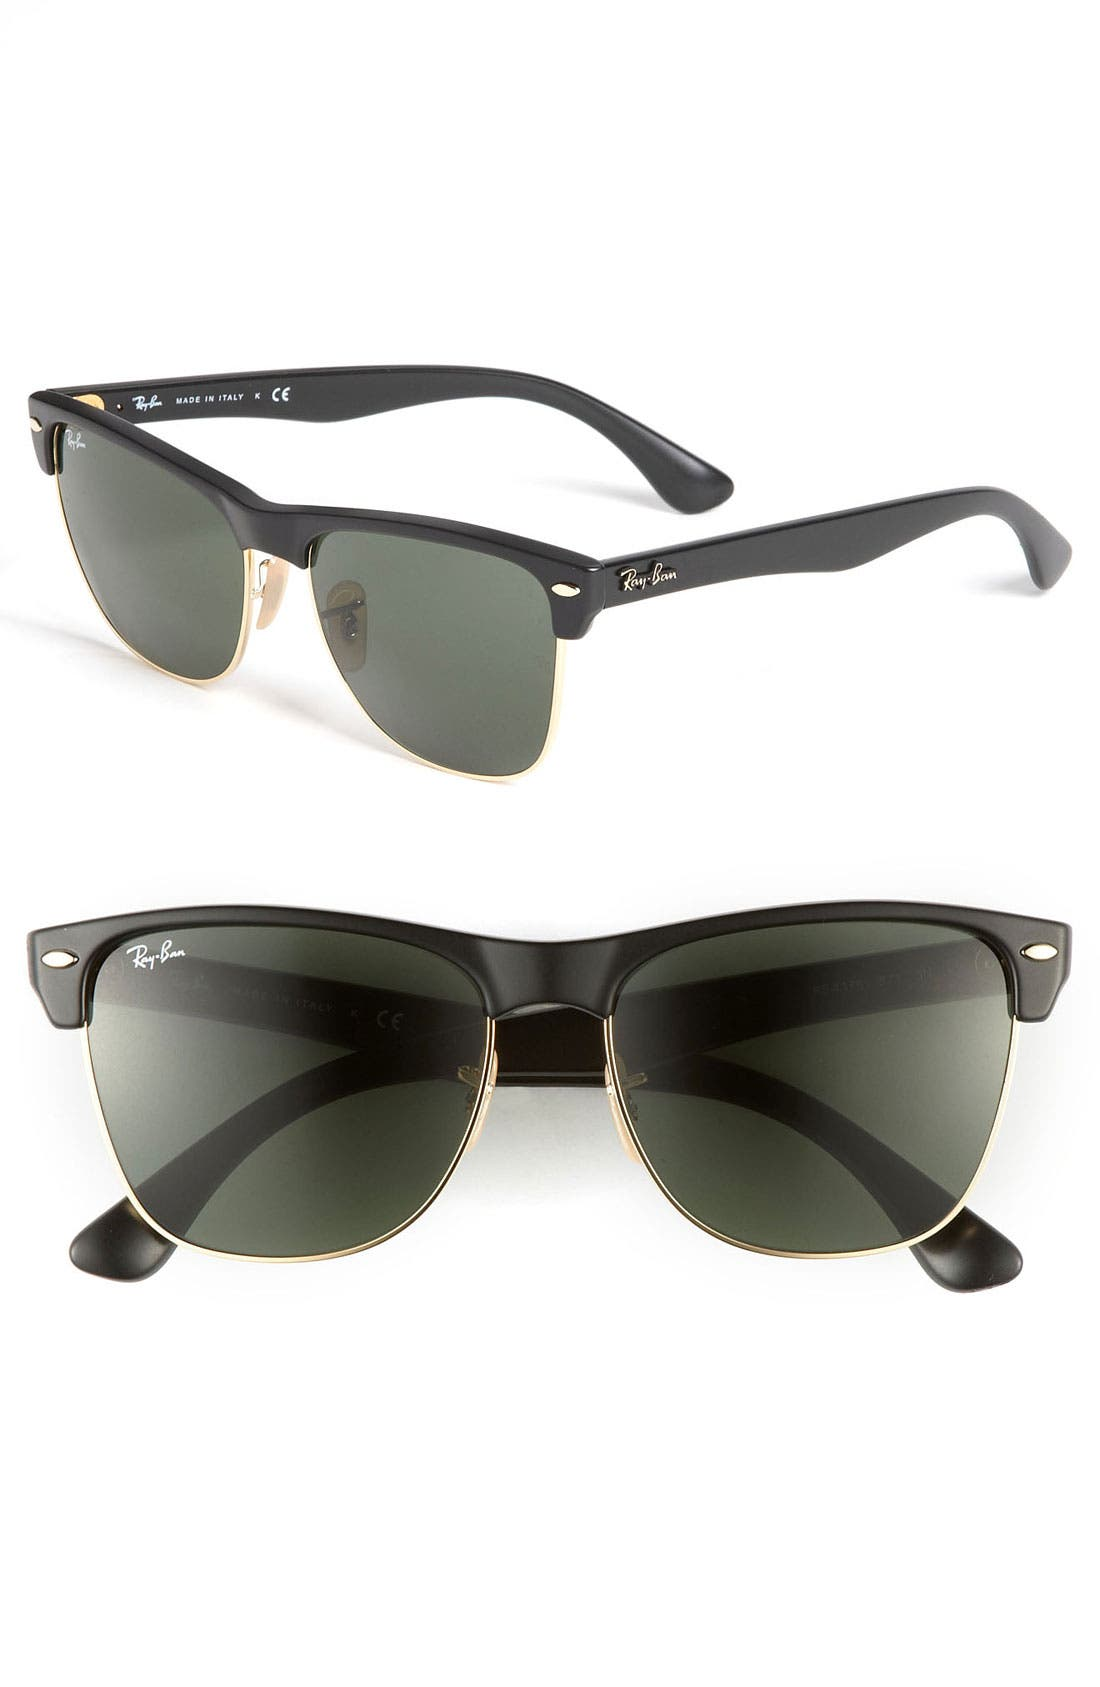 Highstreet 57mm Sunglasses,                             Main thumbnail 1, color,                             DEMI BLACK/ GREEN SOLID